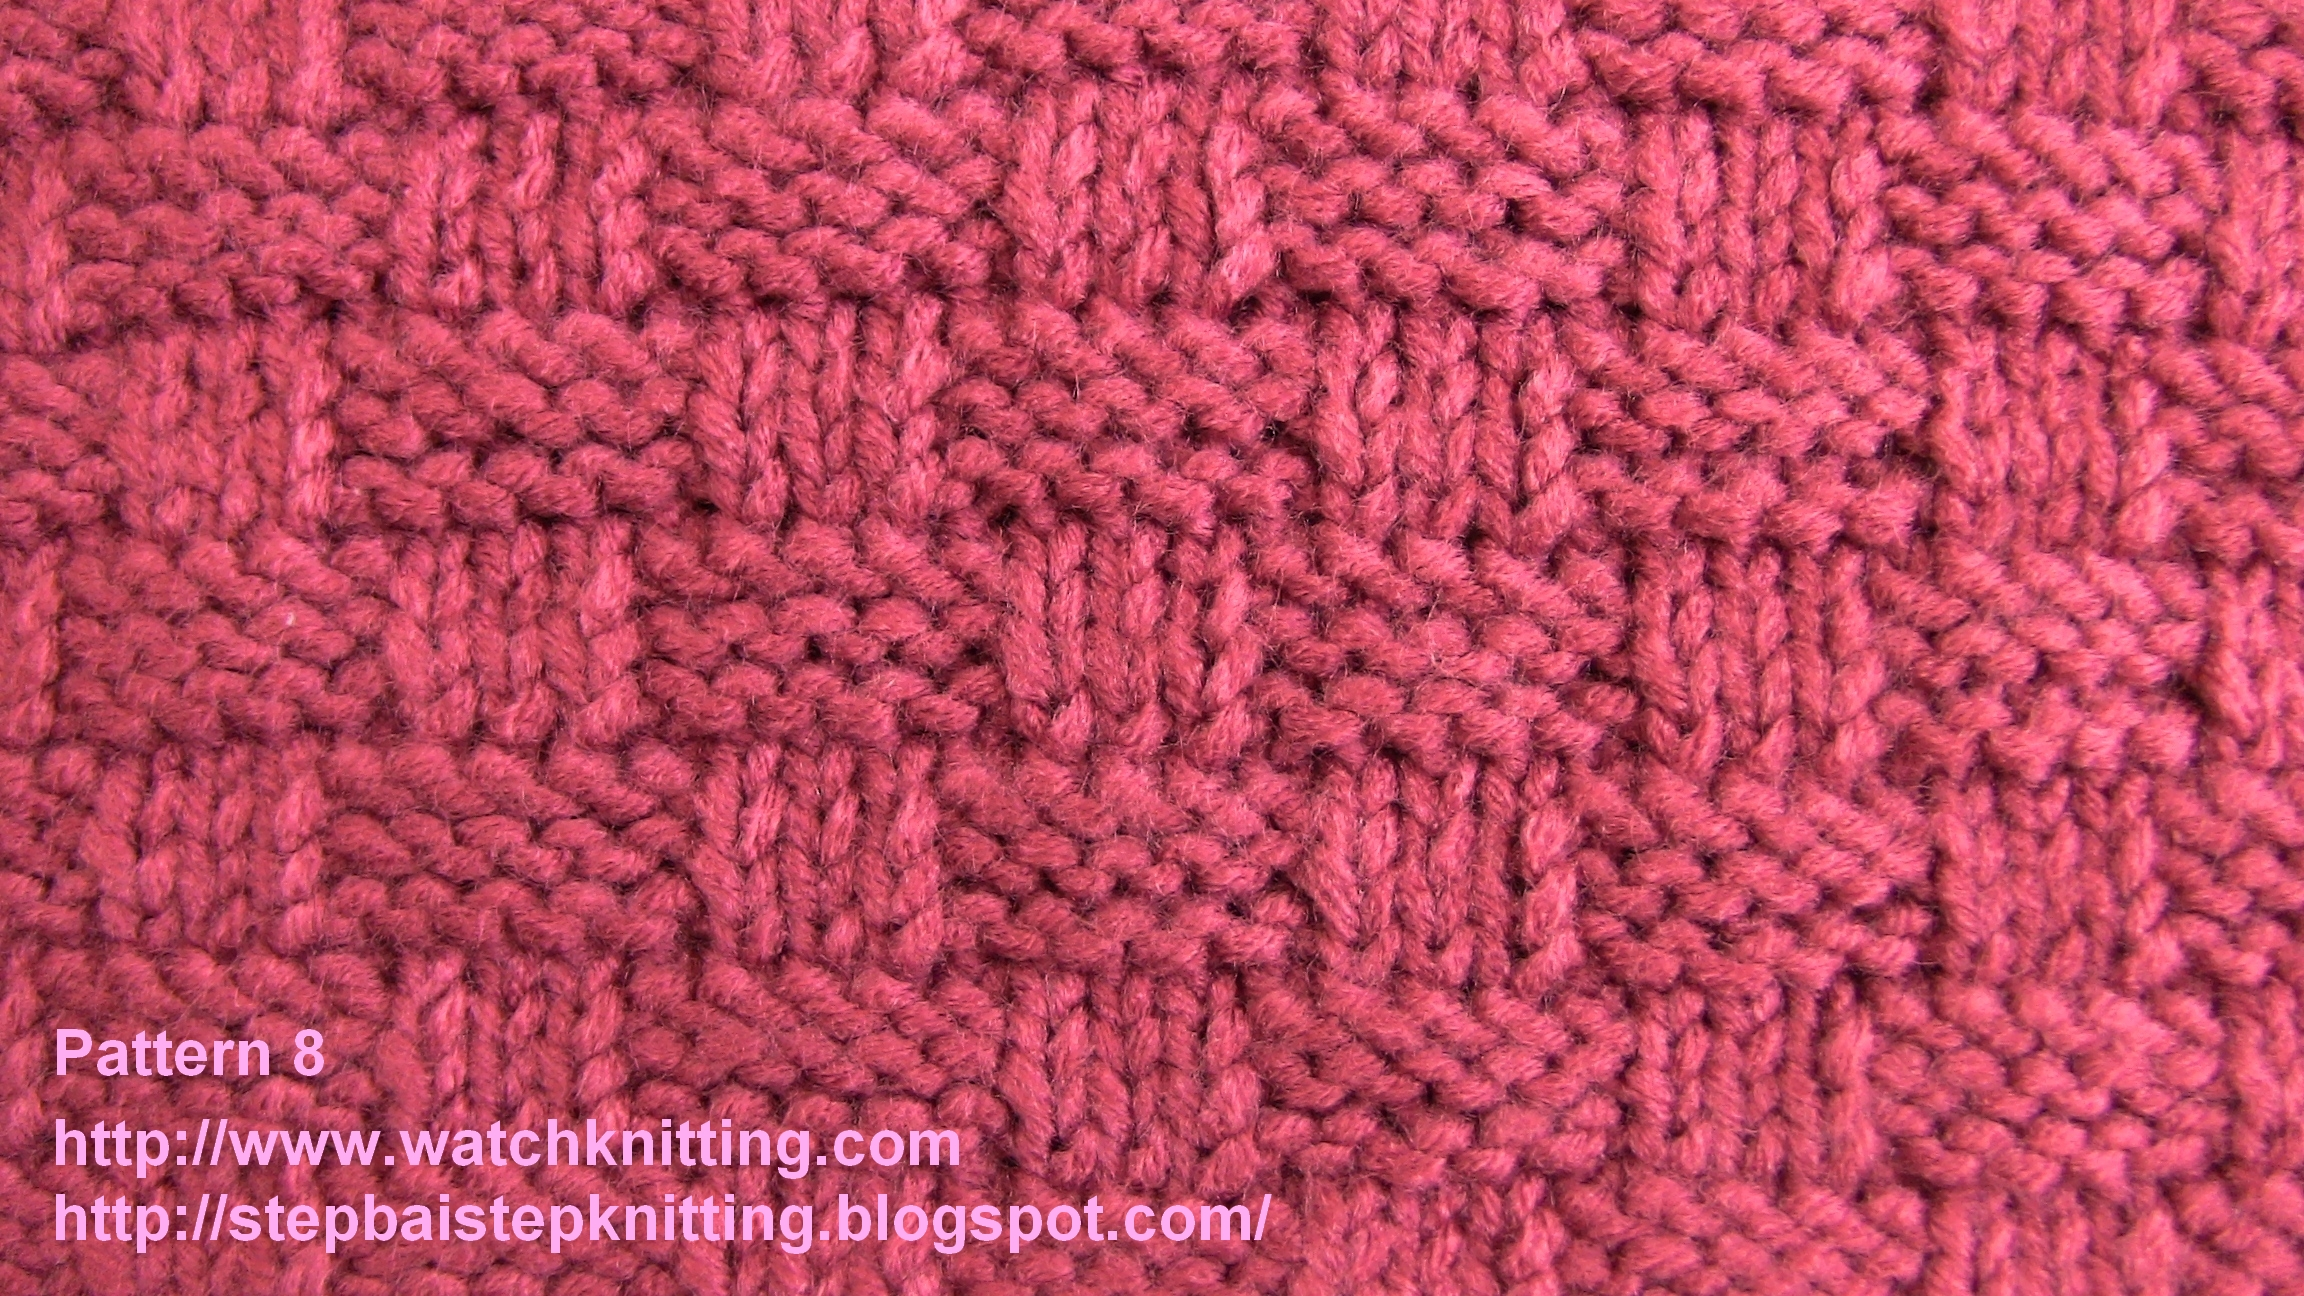 Easy Knitting Patterns Instructions : Basic knitting stitches watch